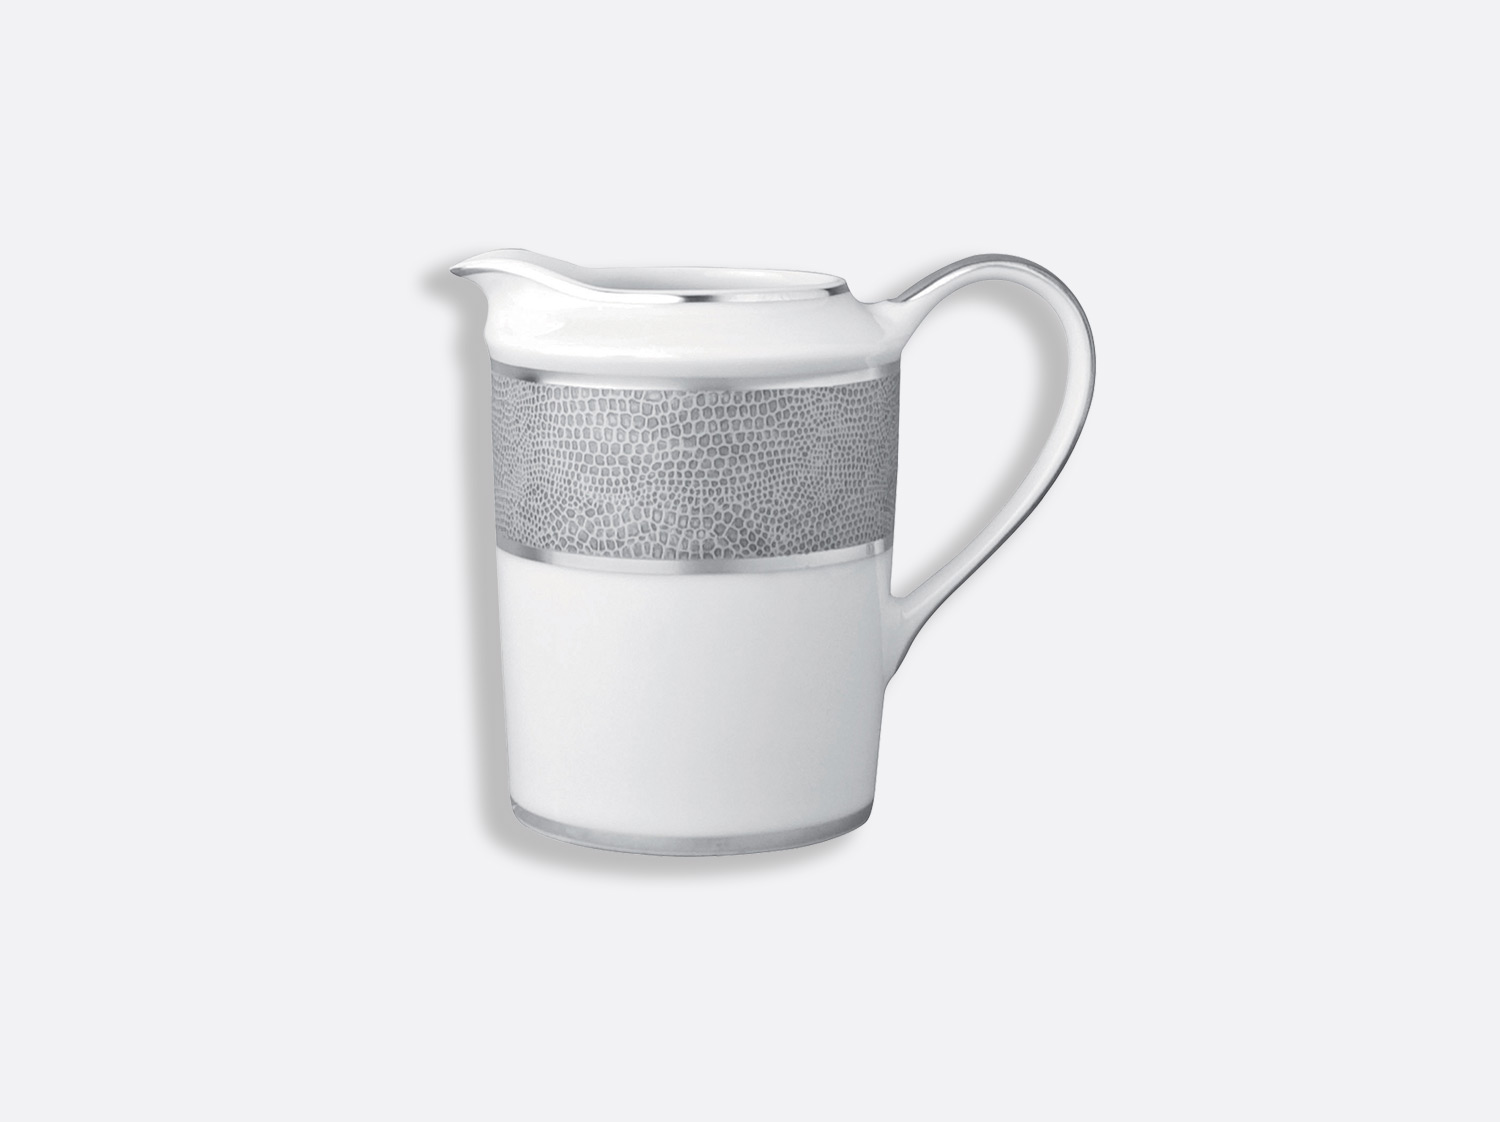 China Creamer 12 cups 30 cl of the collection Sauvage | Bernardaud